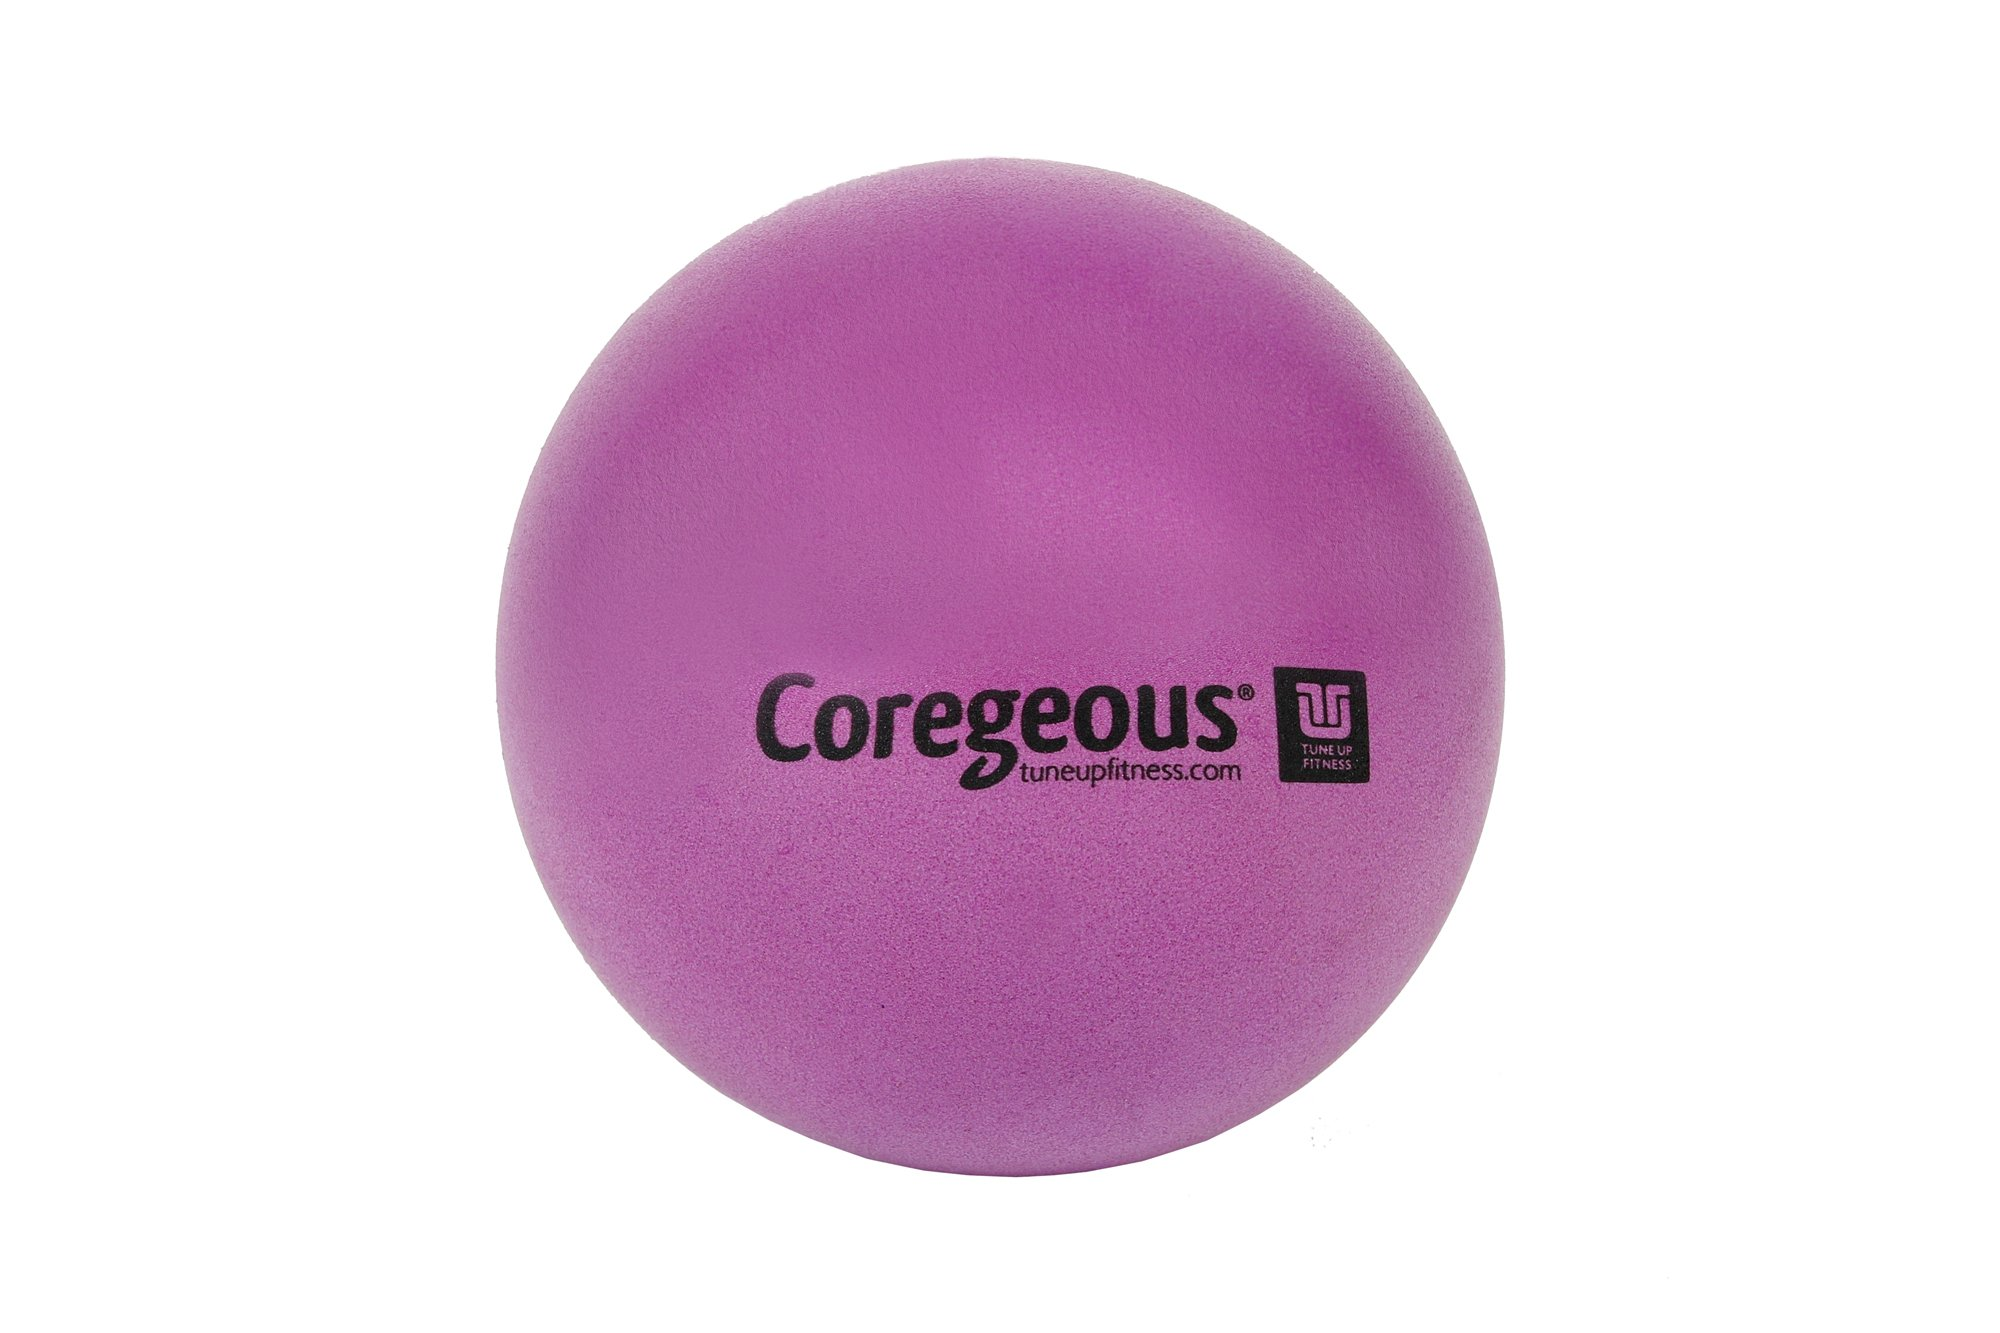 Tune Up Fitness Coregeous® Therapy Ball, Yoga Tune Up, The Roll Model Method: Used for Abdominal Massage, Myofascial Release, and Stress Reduction